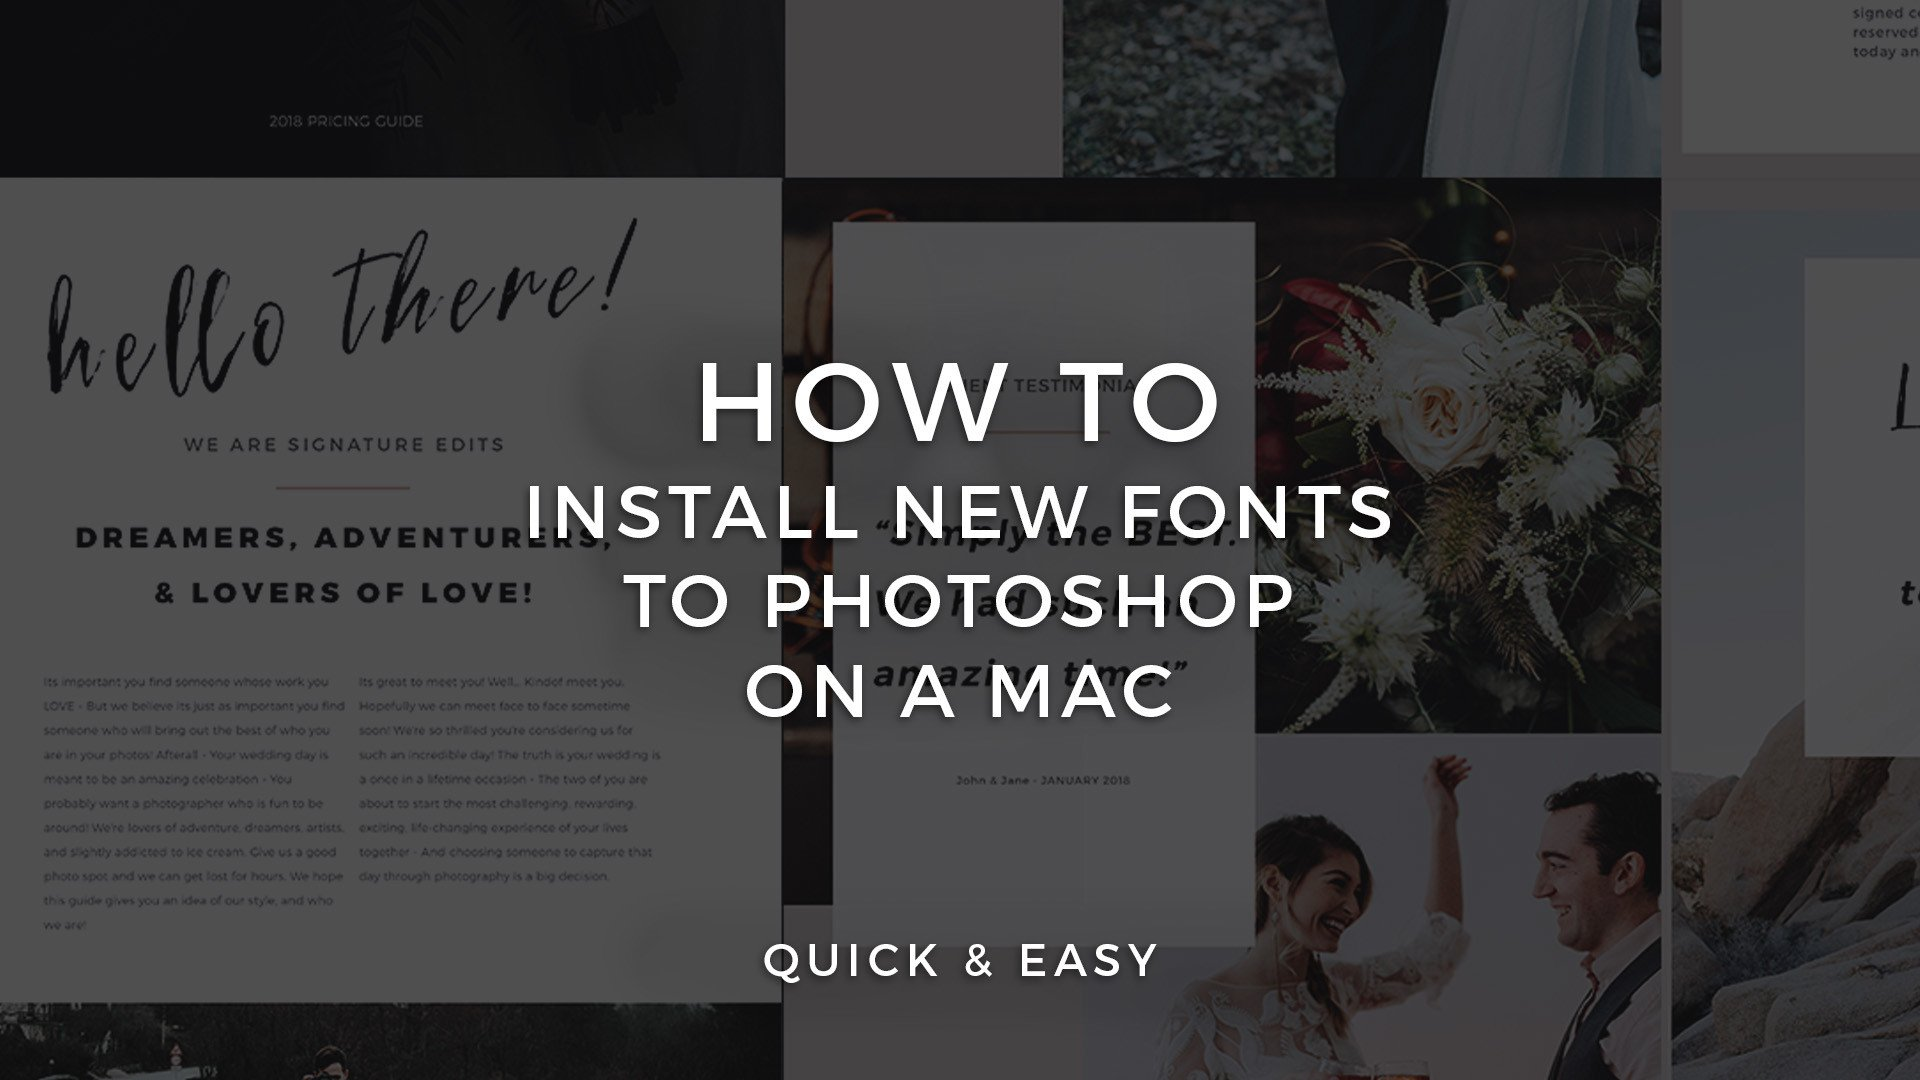 Free fonts passes 400,000 downloads on the mac app store prmac.